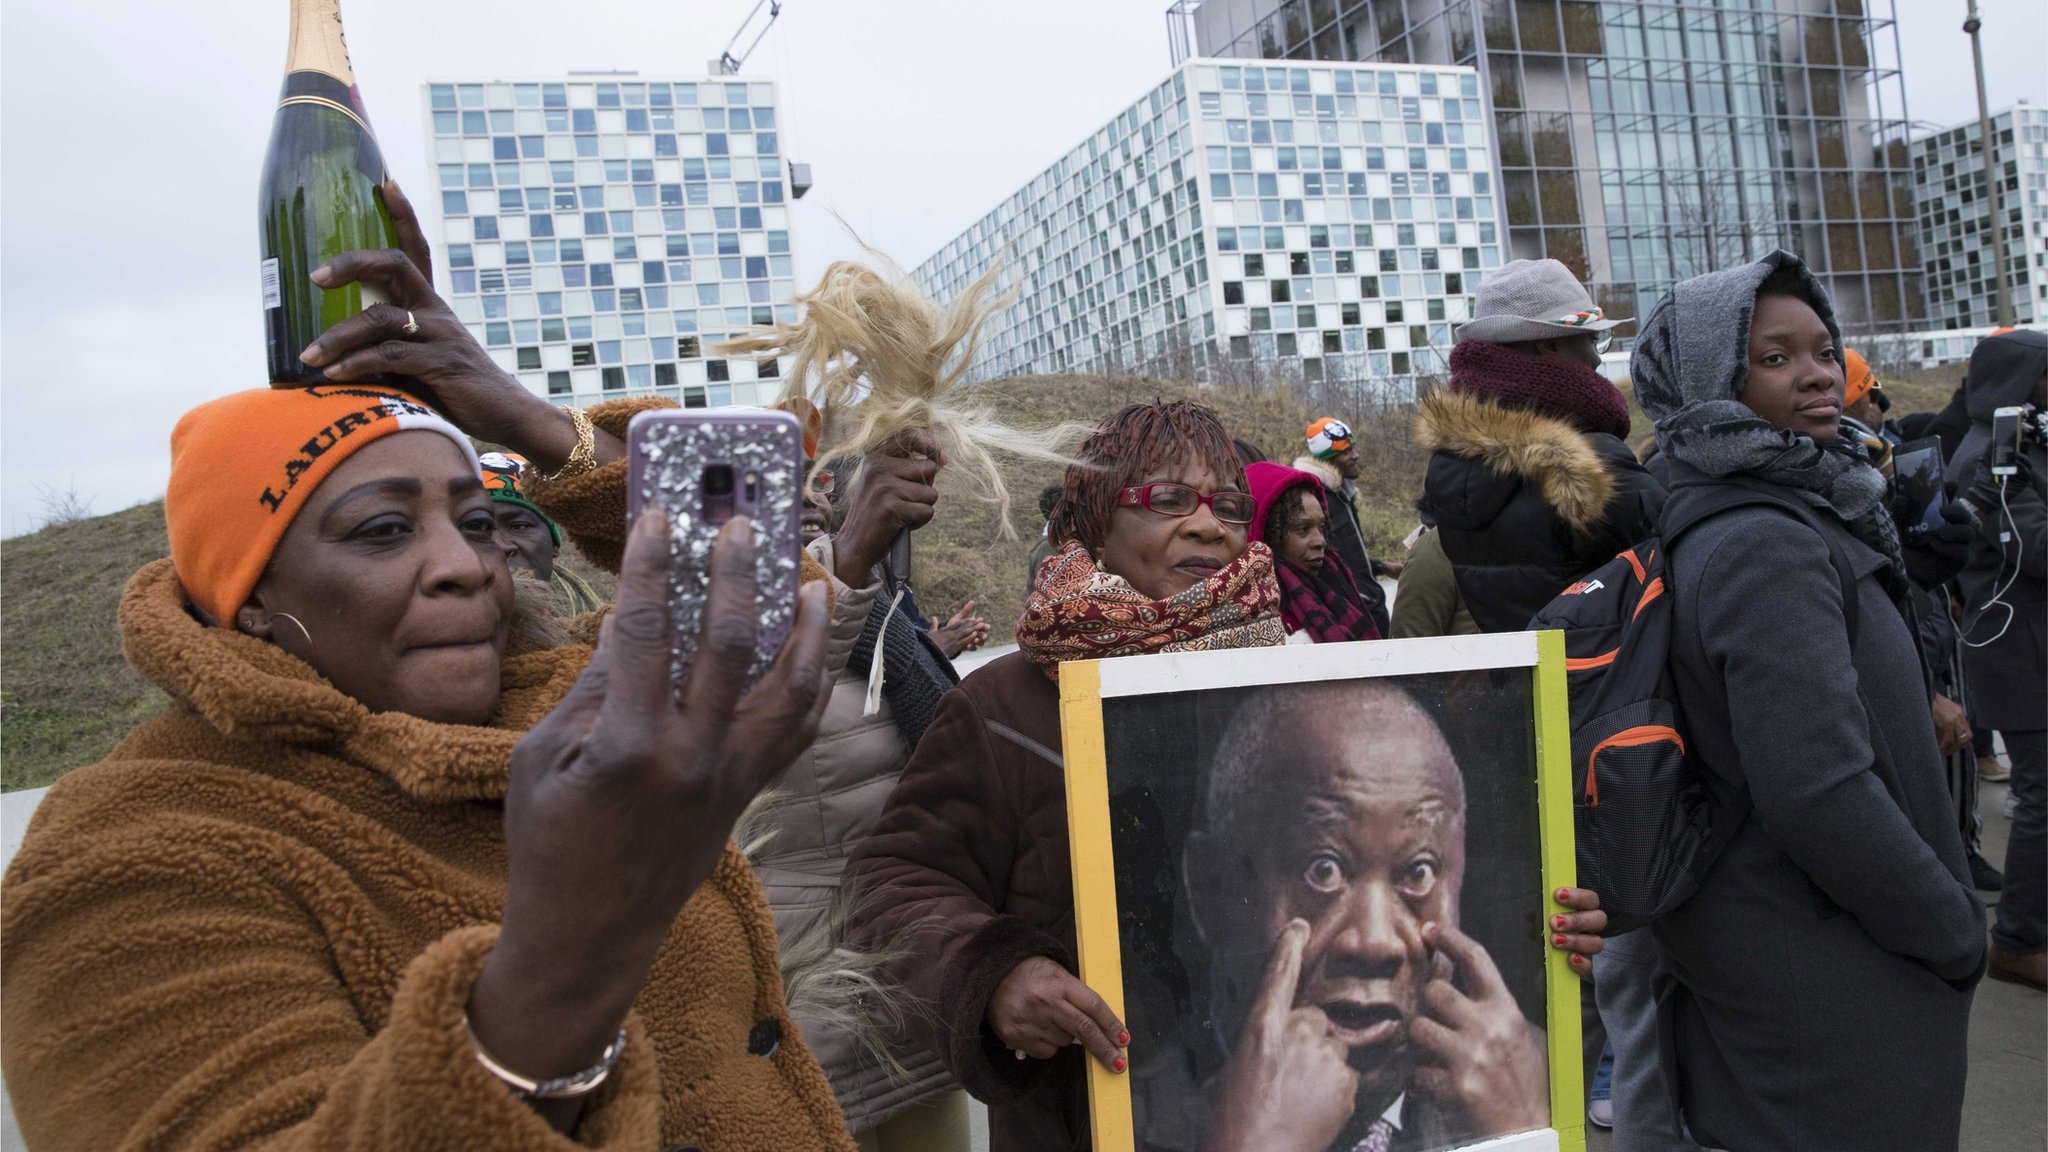 Ivory Coast ex-President Gbagbo acquitted at ICC court in The Hague